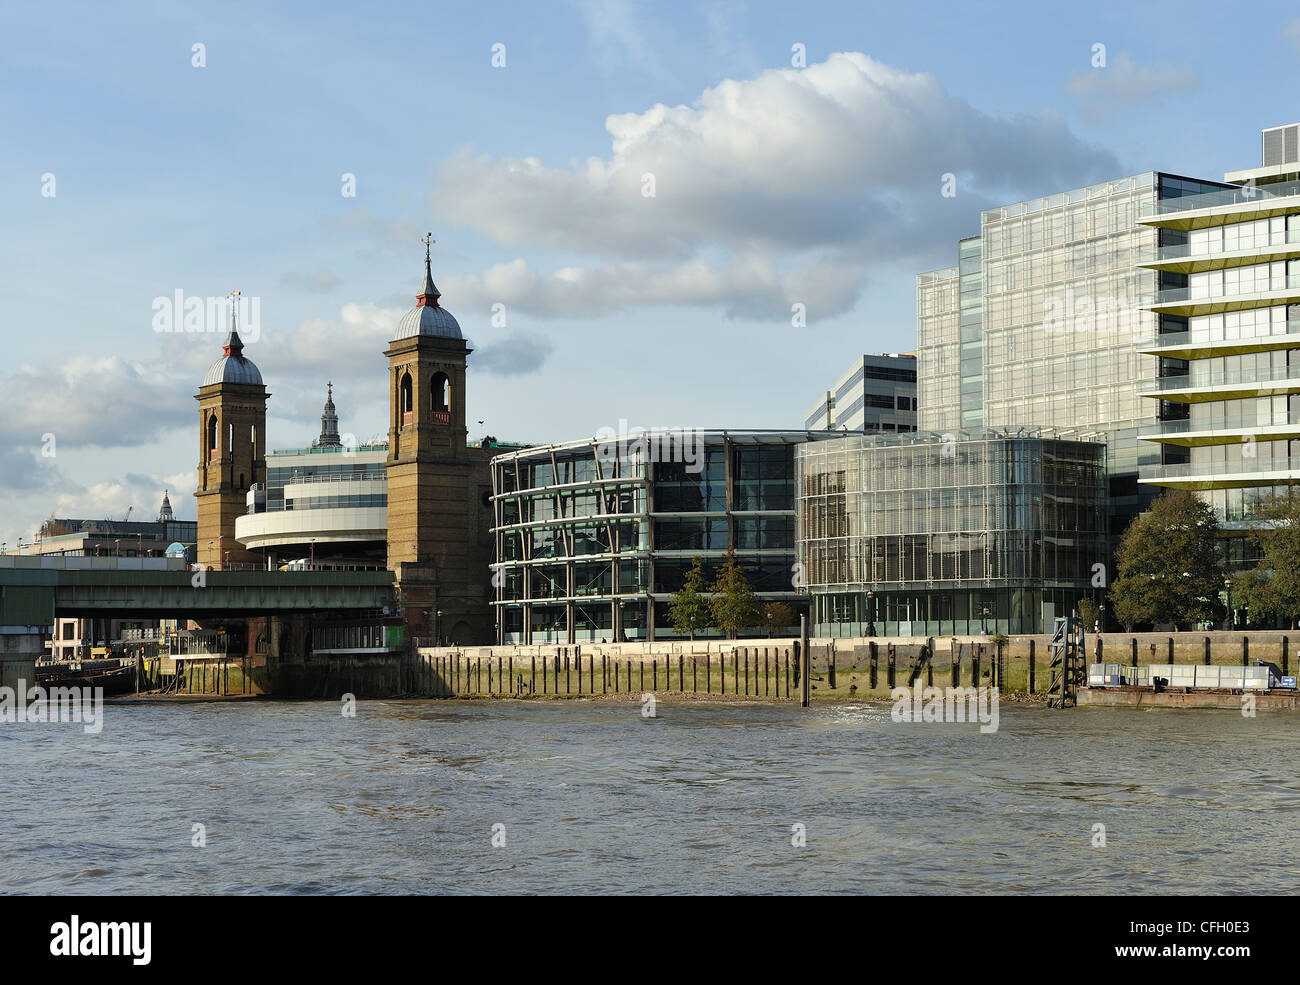 City of London Cannon Street Station River Thames London England UK - Stock Image